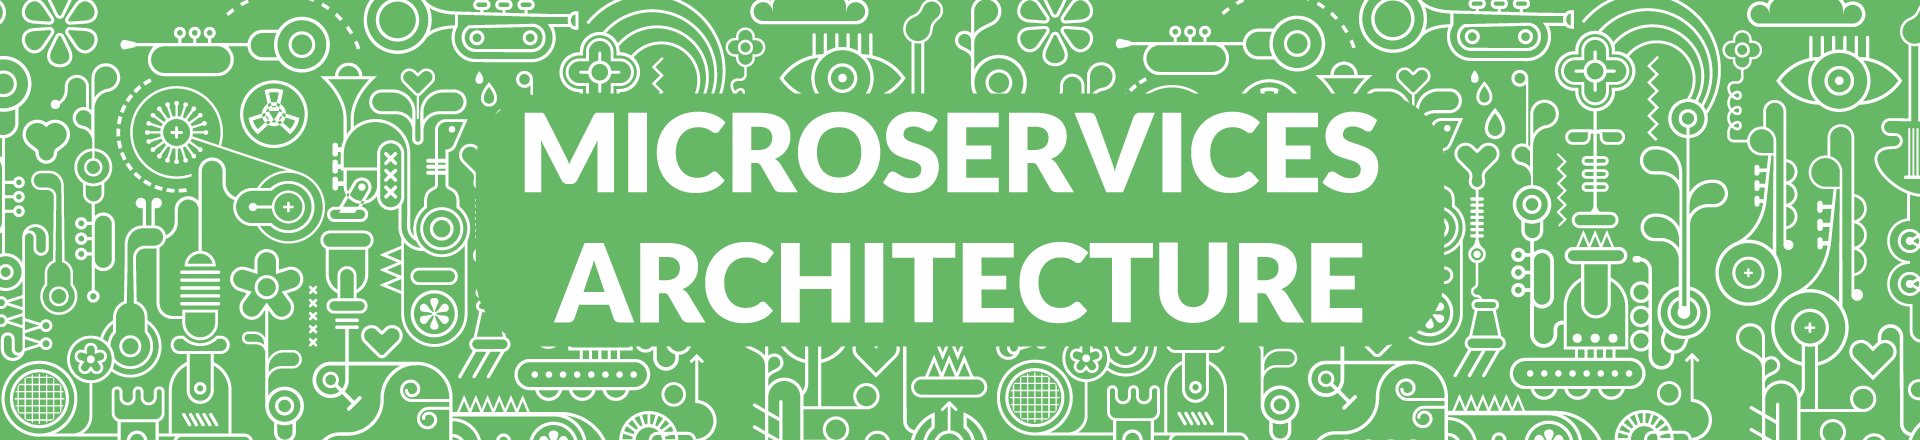 microservices-blog-banner.png